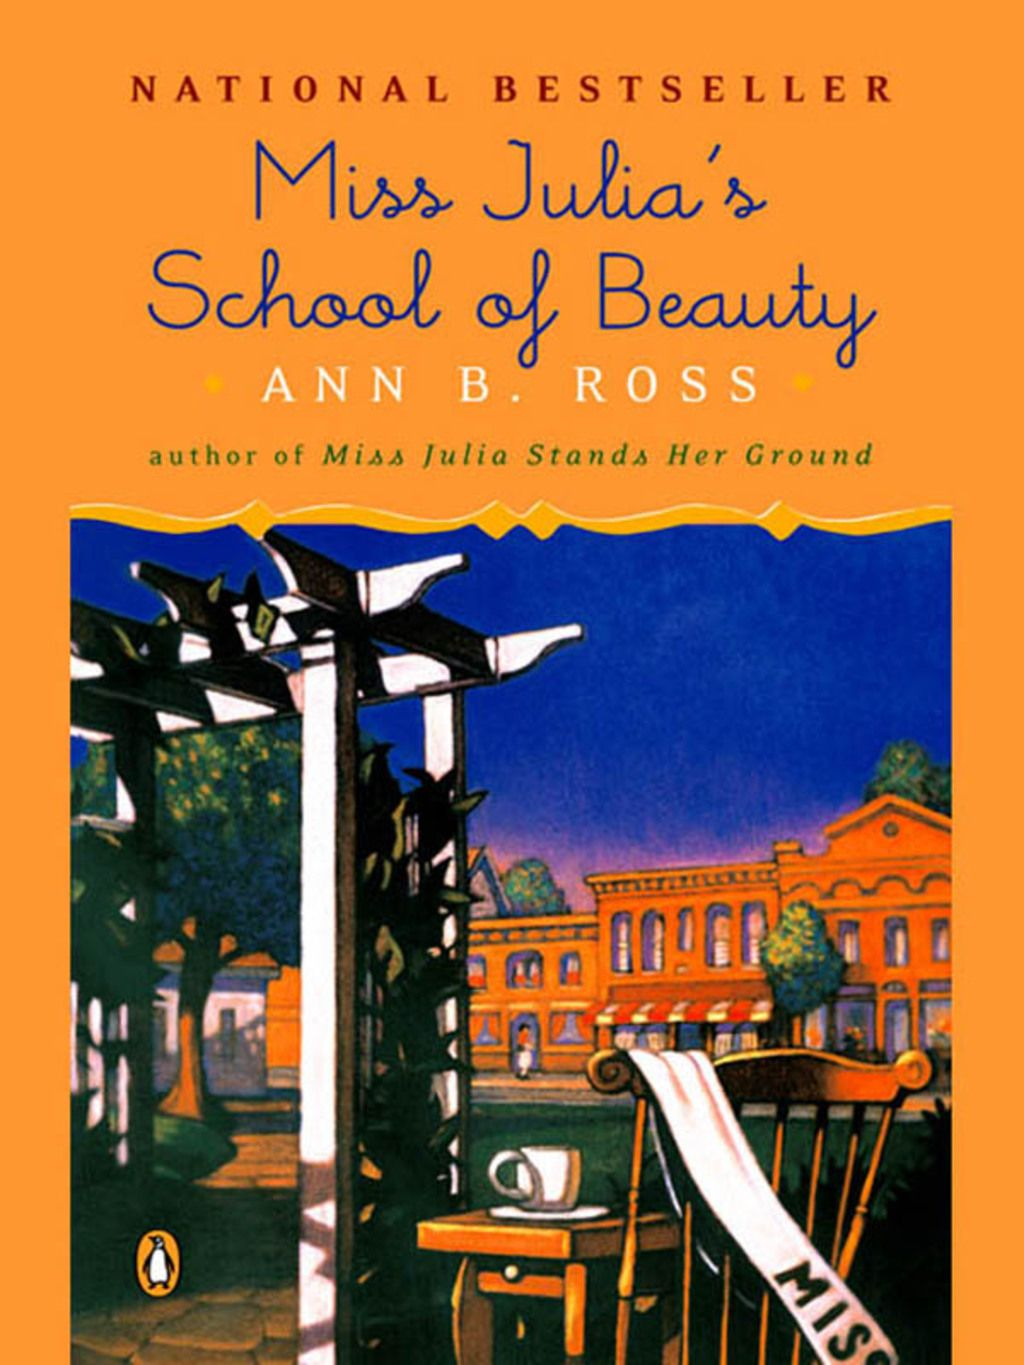 Park Art|My WordPress Blog_Do You Have To Read Miss Julia Books In Order